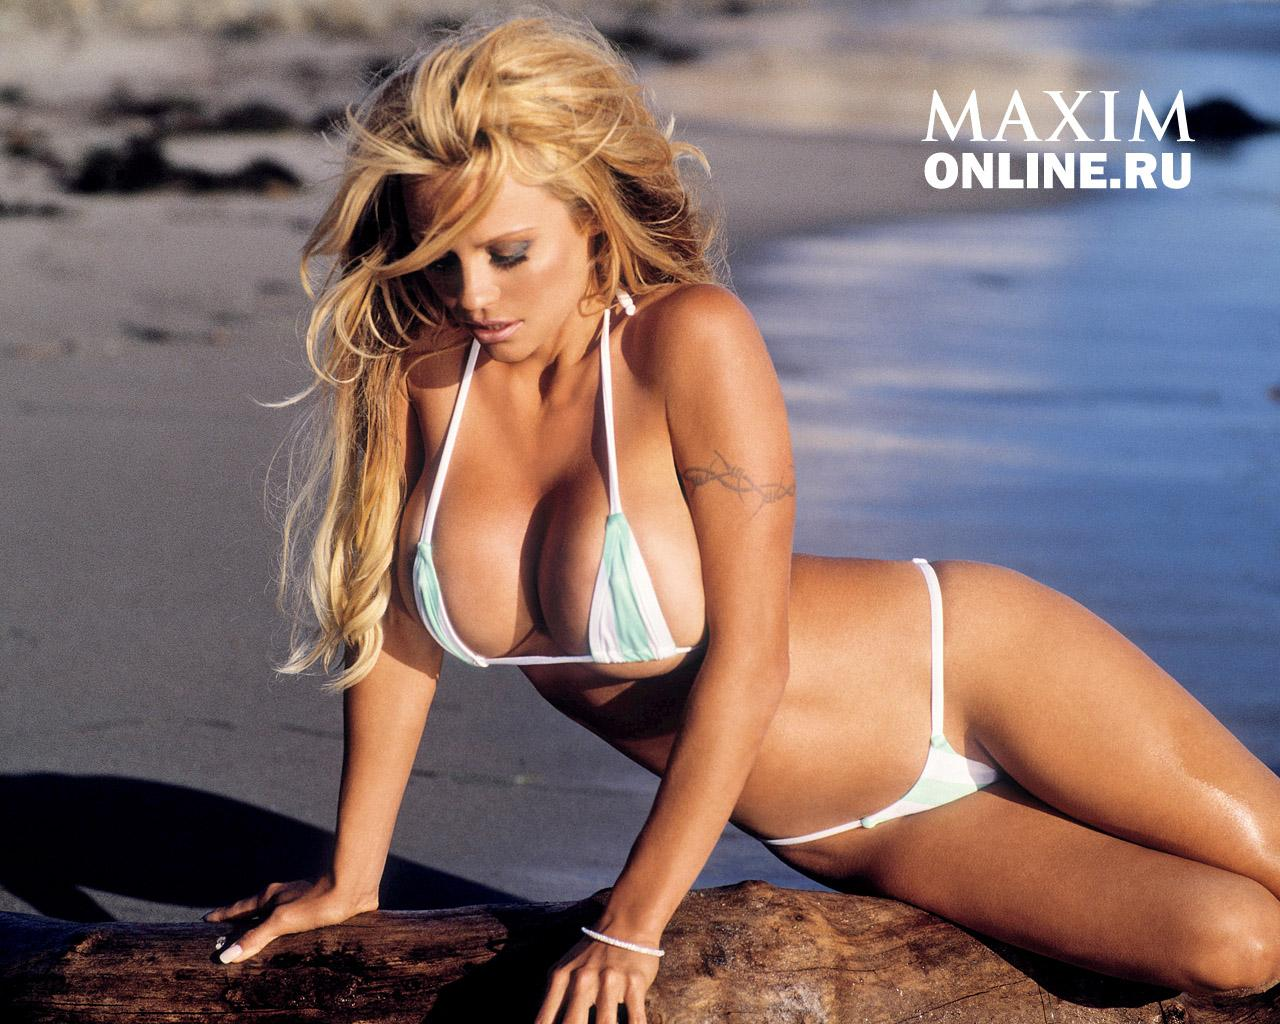 Live Girl Wallpaper Iphone Download Pamela Anderson Wallpaper Gallery